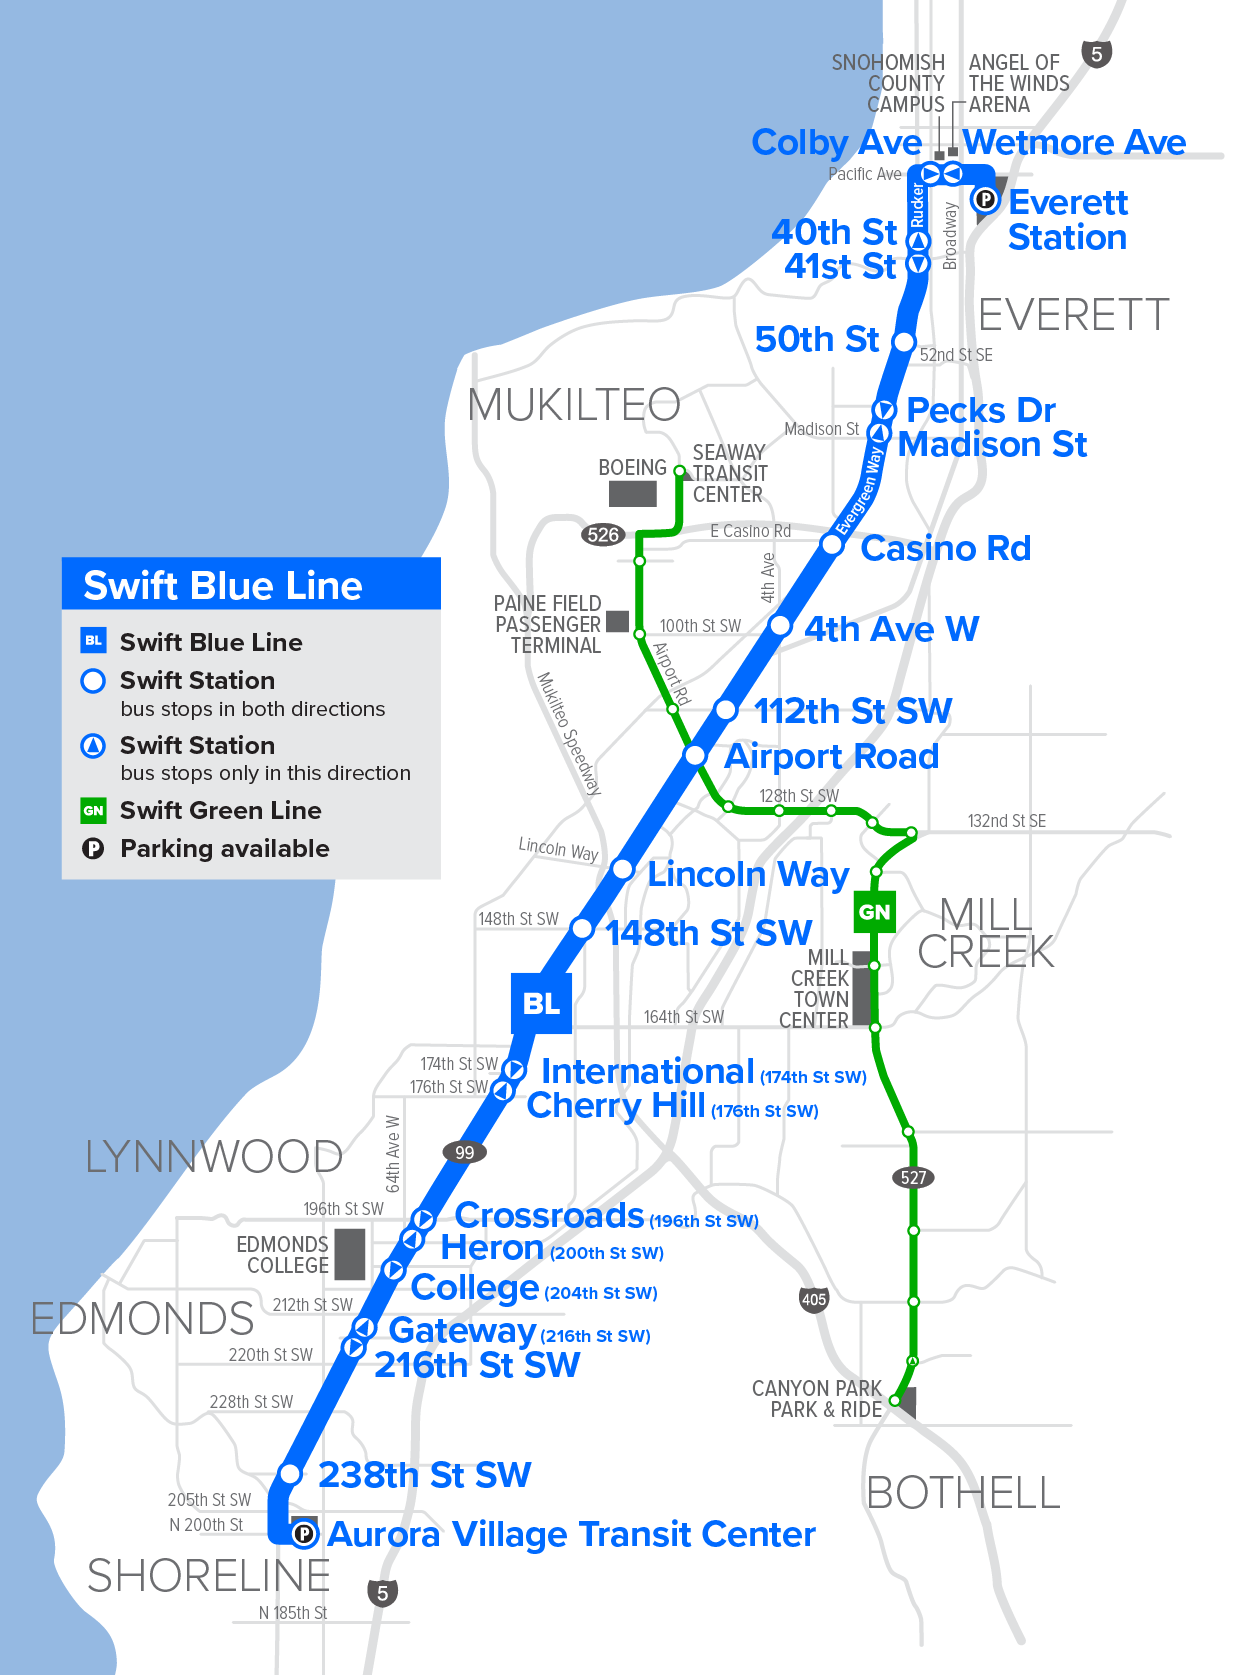 A map of the Swift Blue Line route.